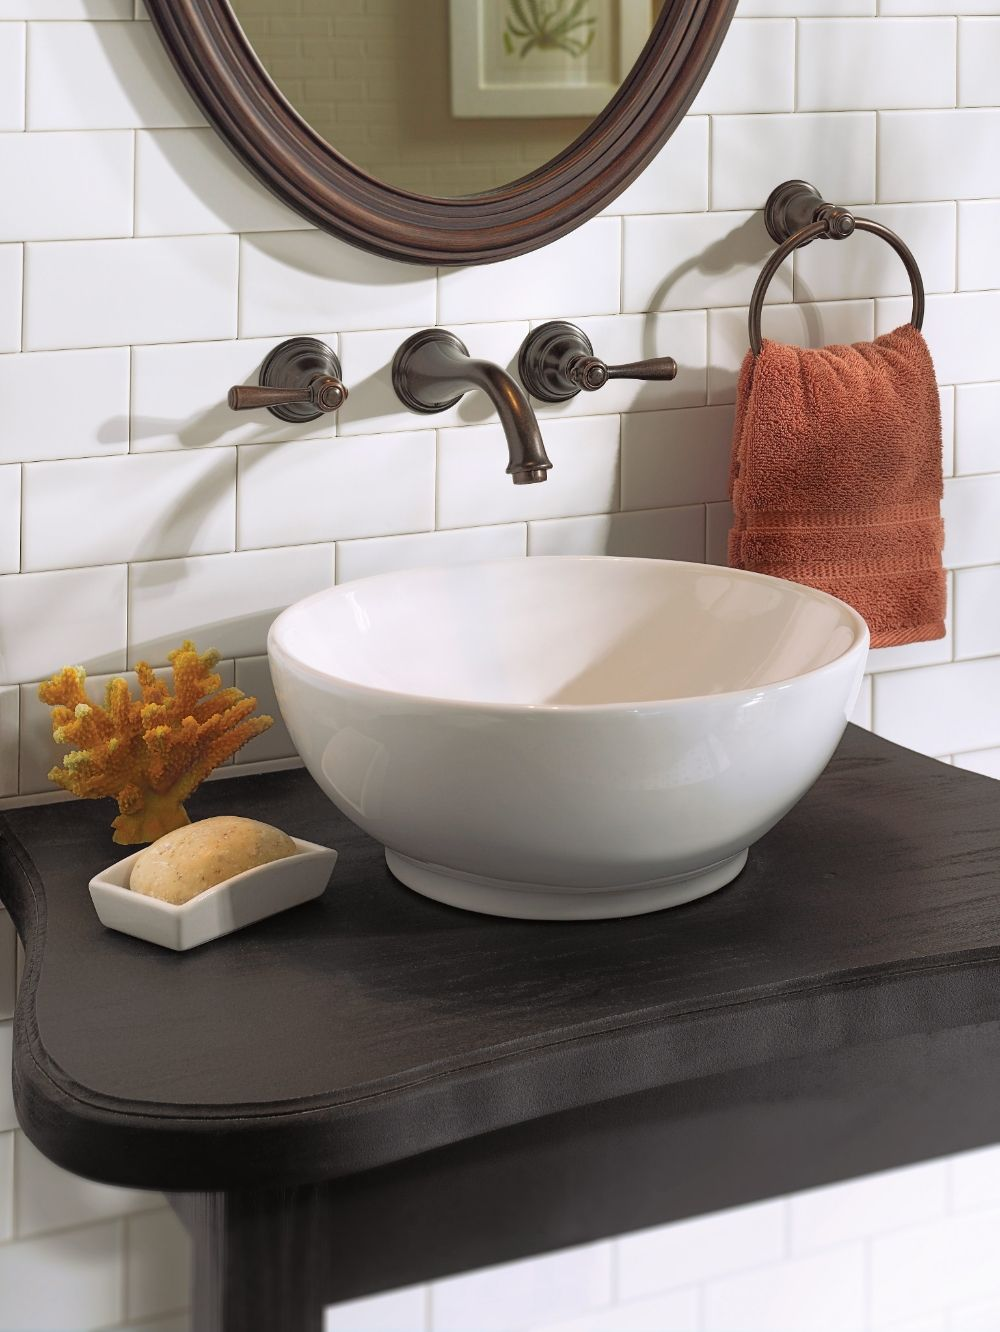 Kingsley Oil rubbed bronze two-handle low arc wall mount bathroom ...